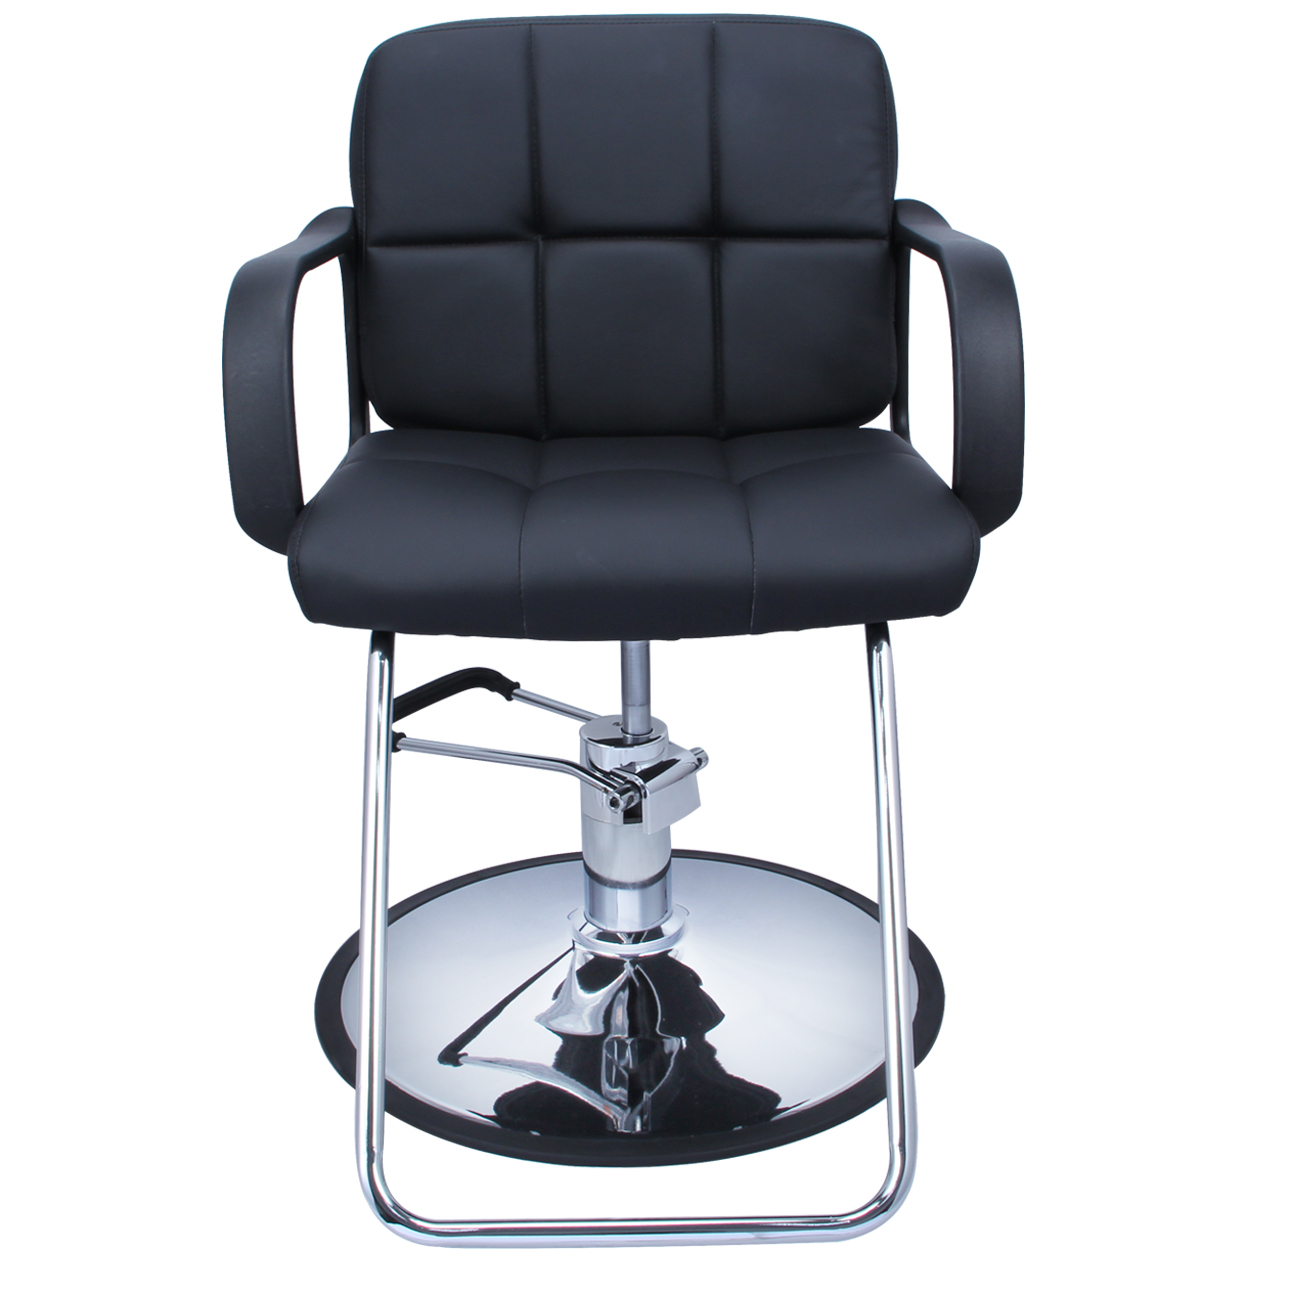 Professional Black Hydraulic Styling Barber Chair Hair